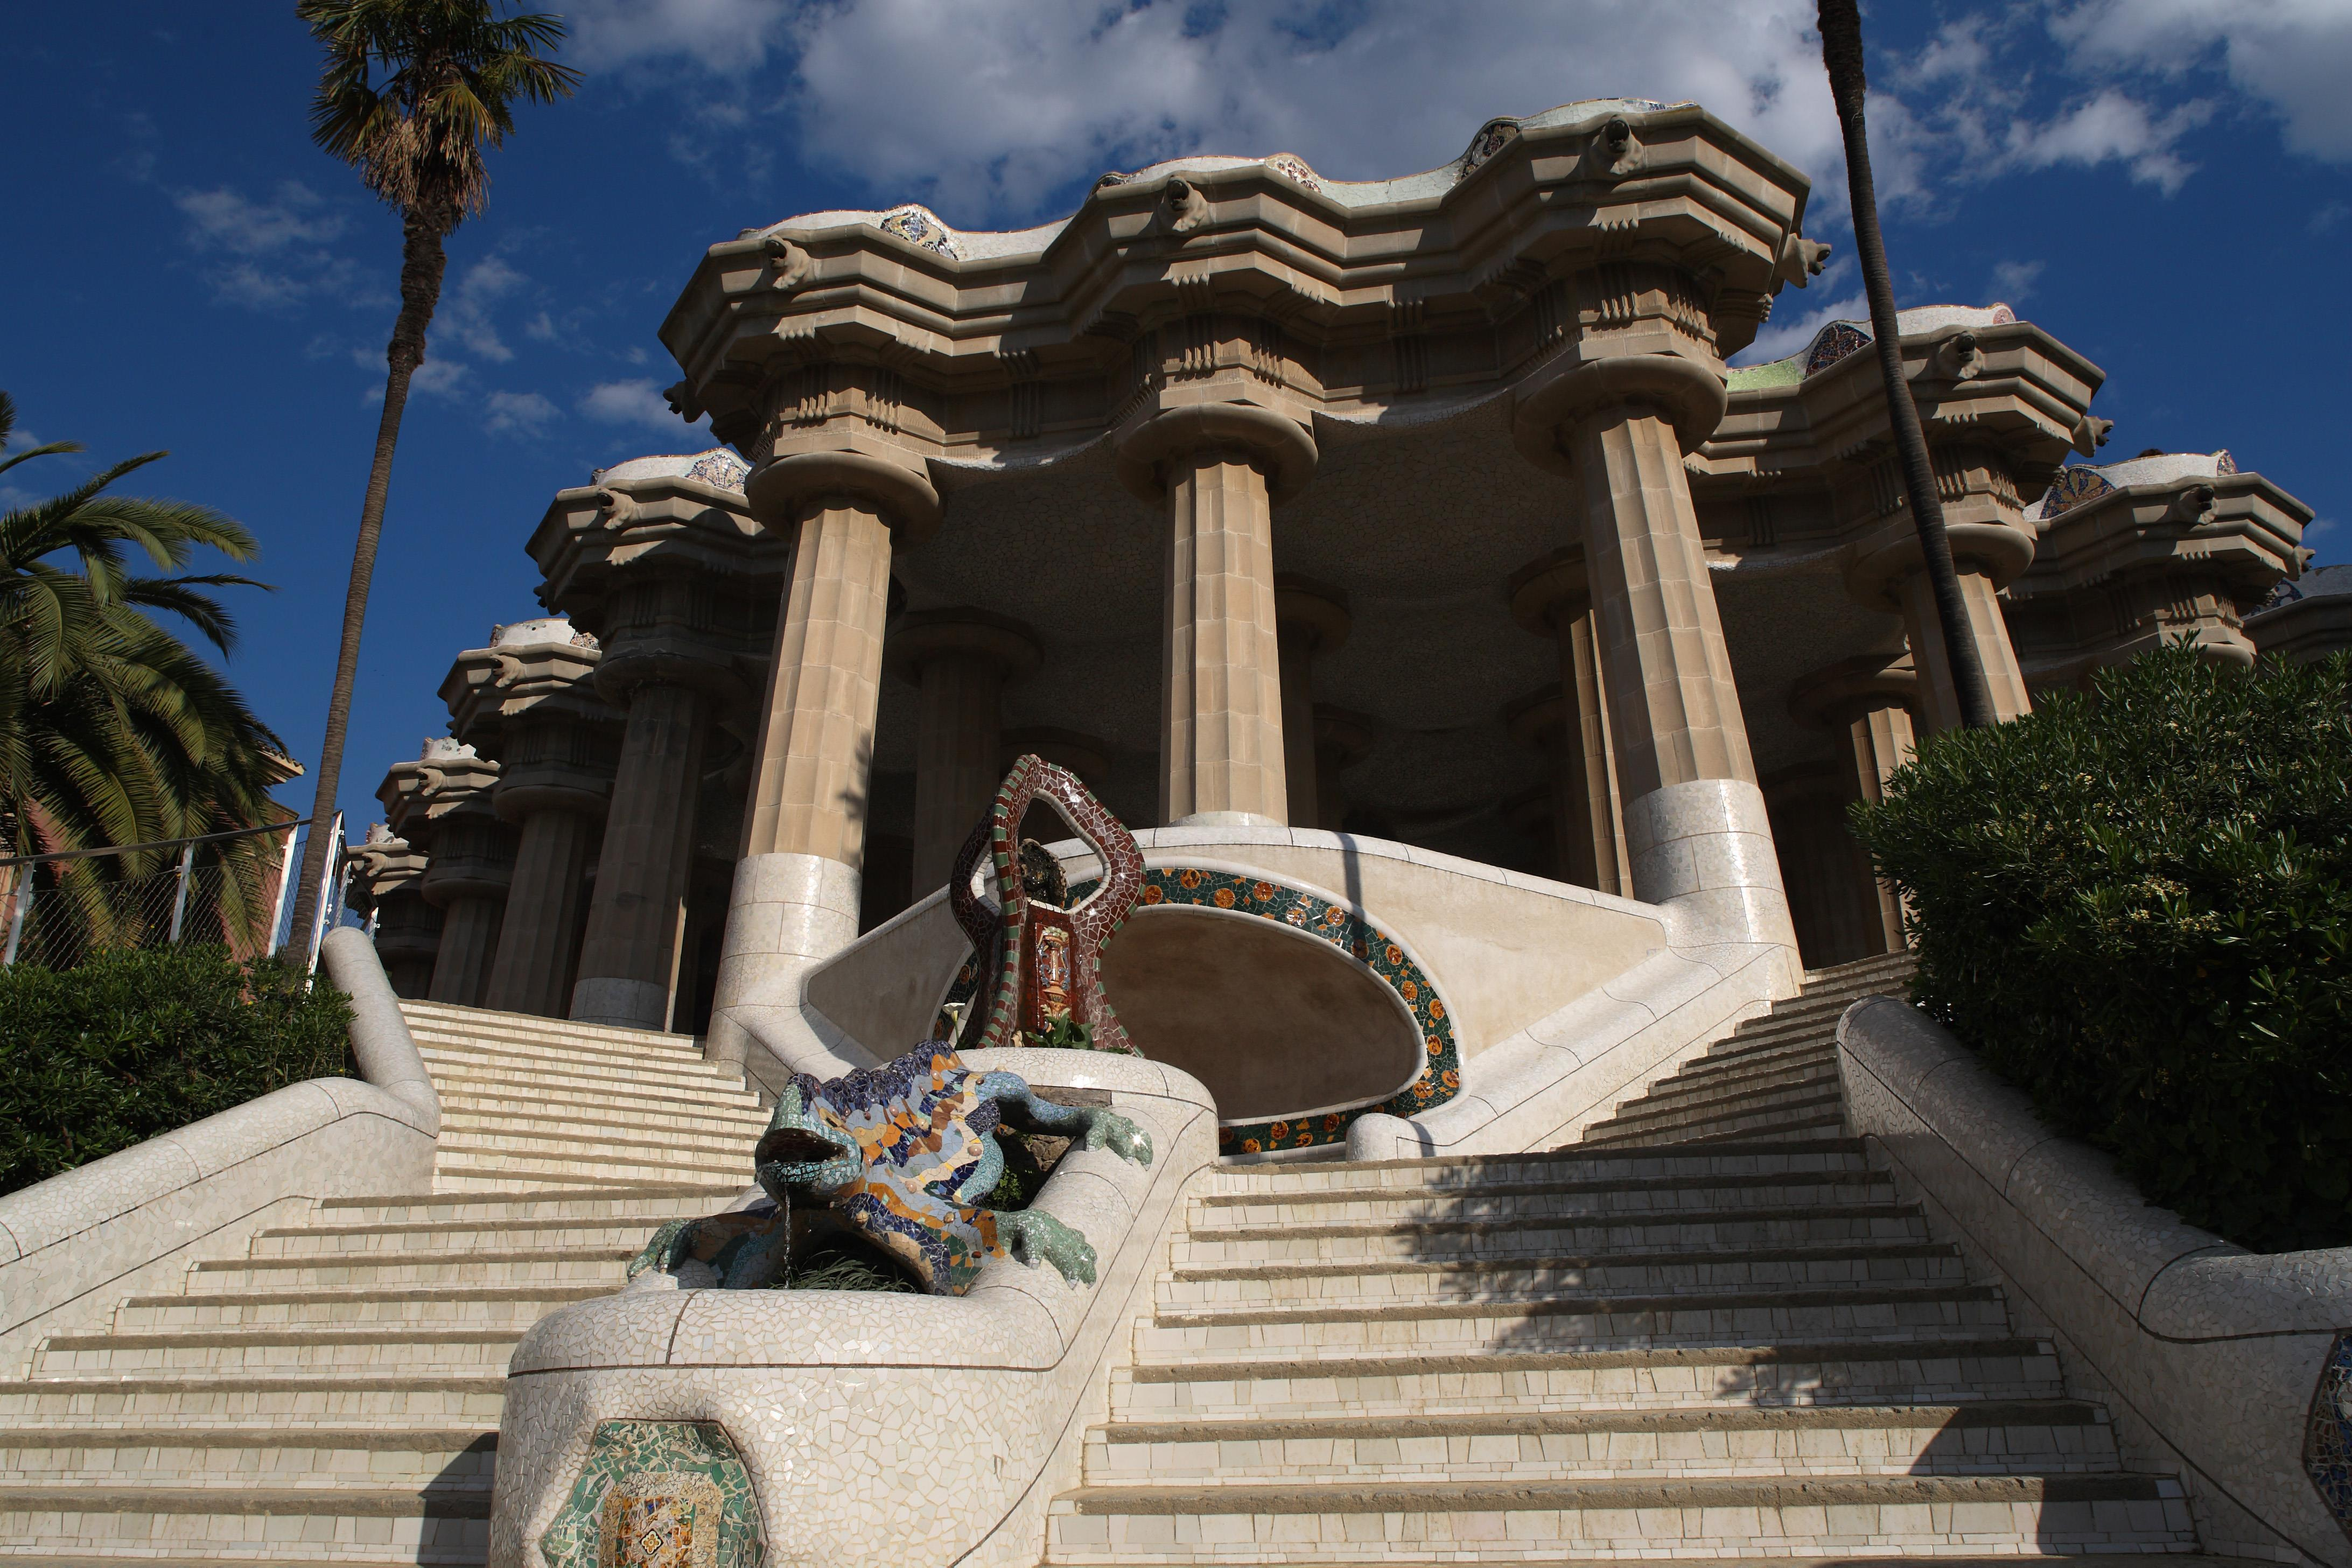 Everything you need to know about Barcelonas Park Güell